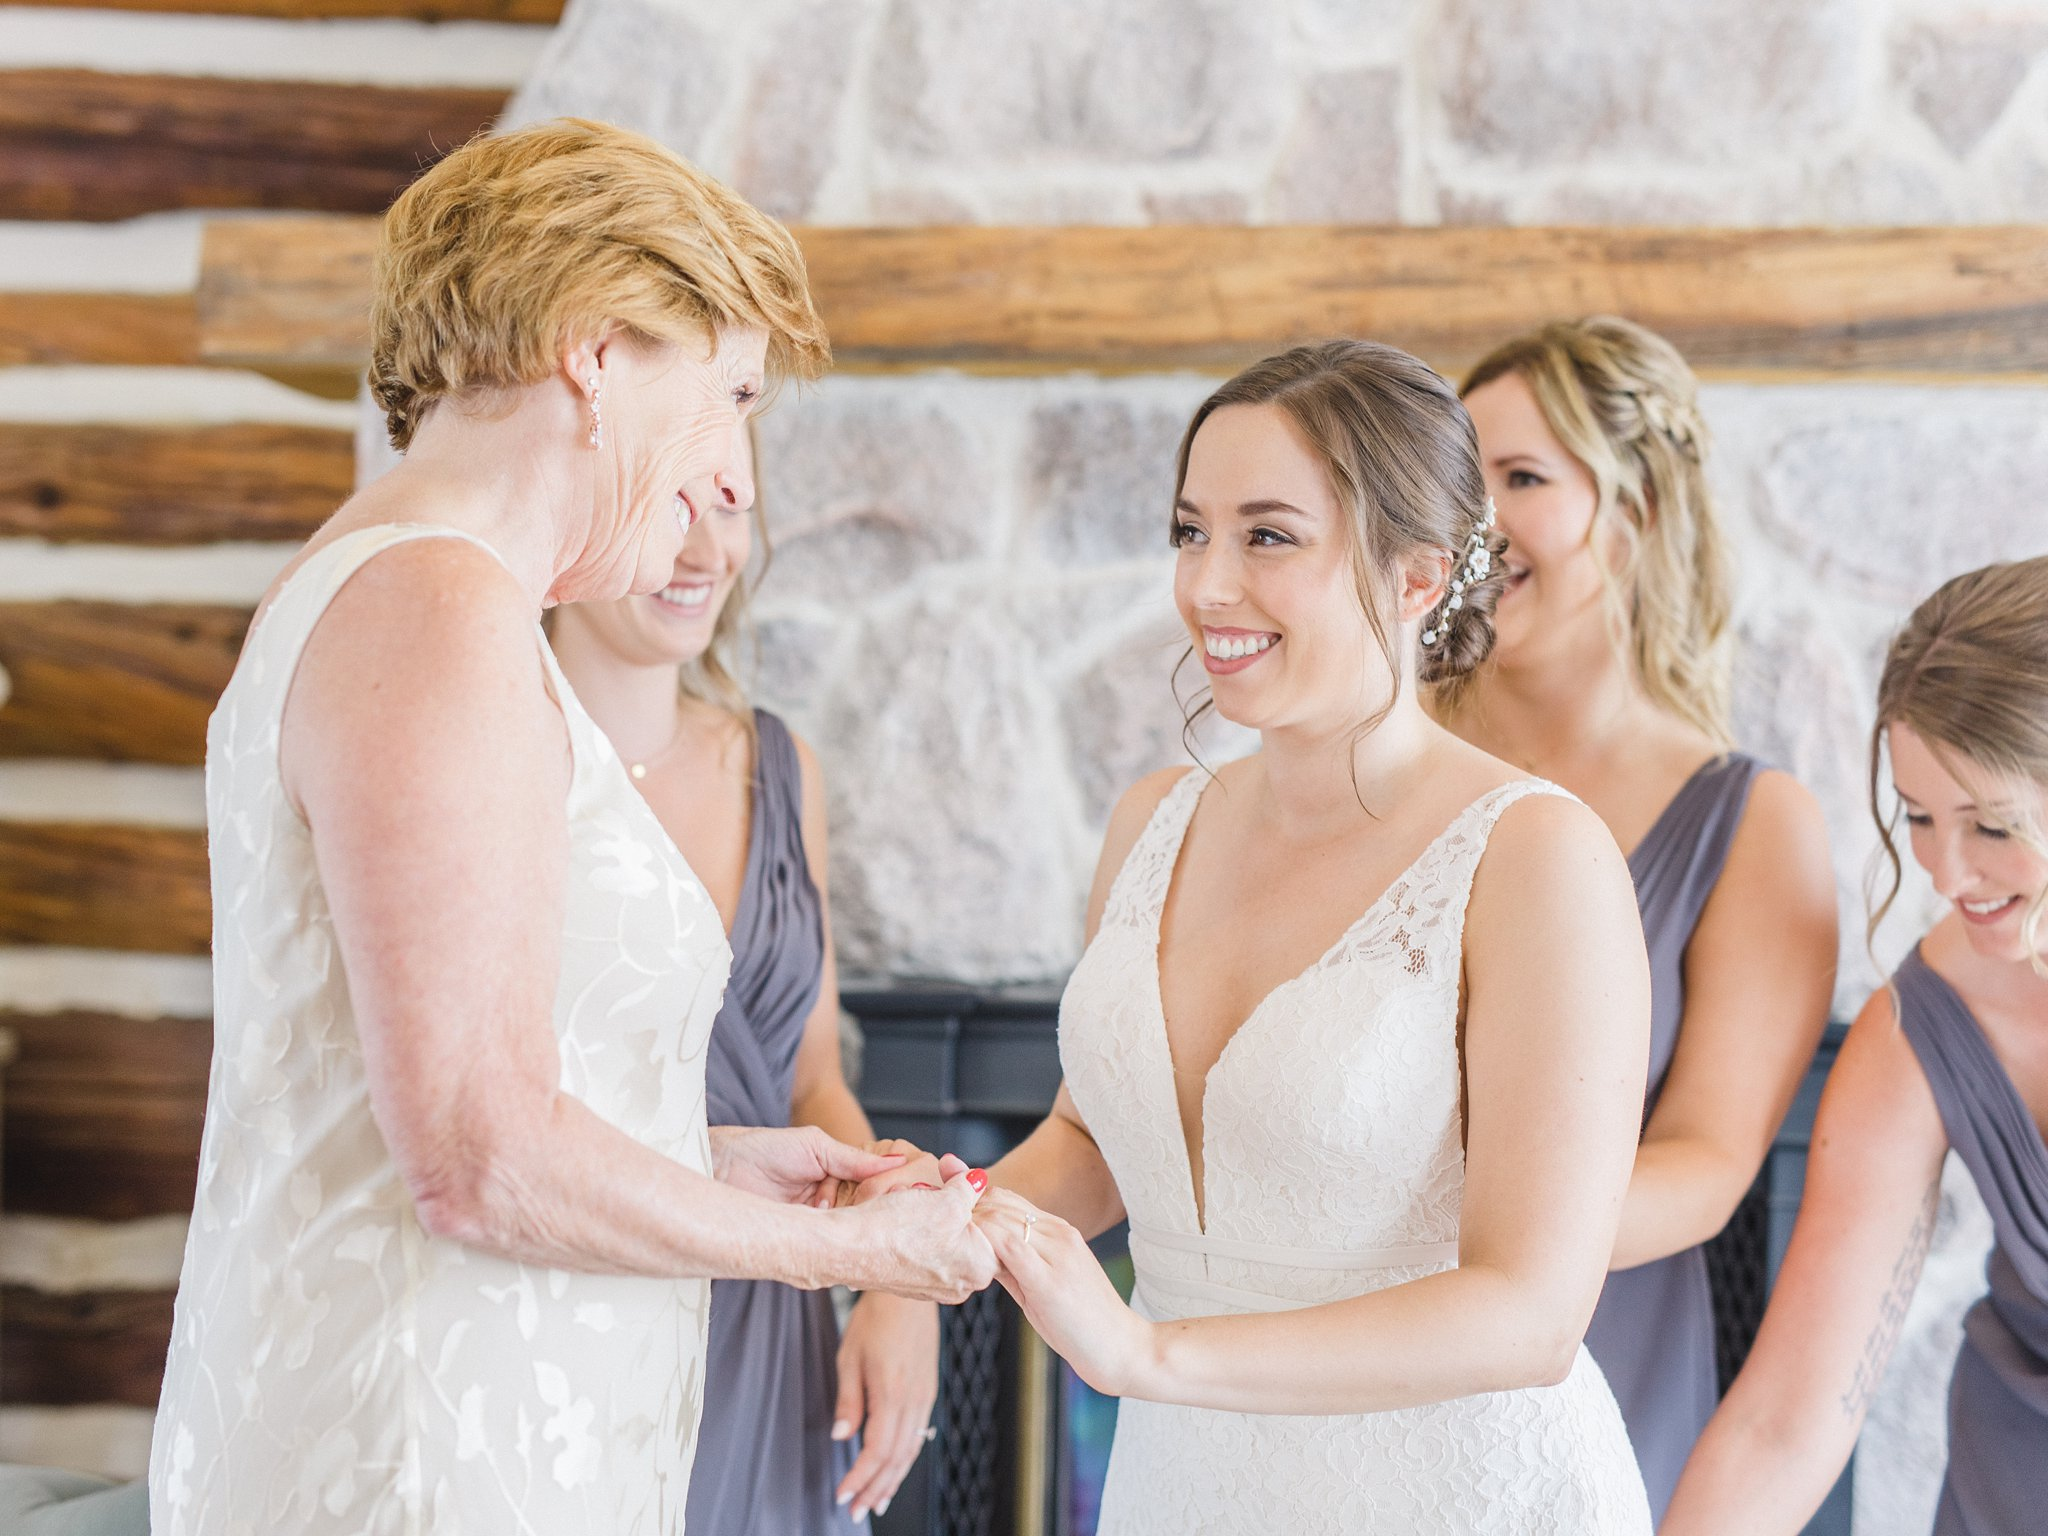 Moment between bride and her mother married at Stonefields, Amy Pinder Photography